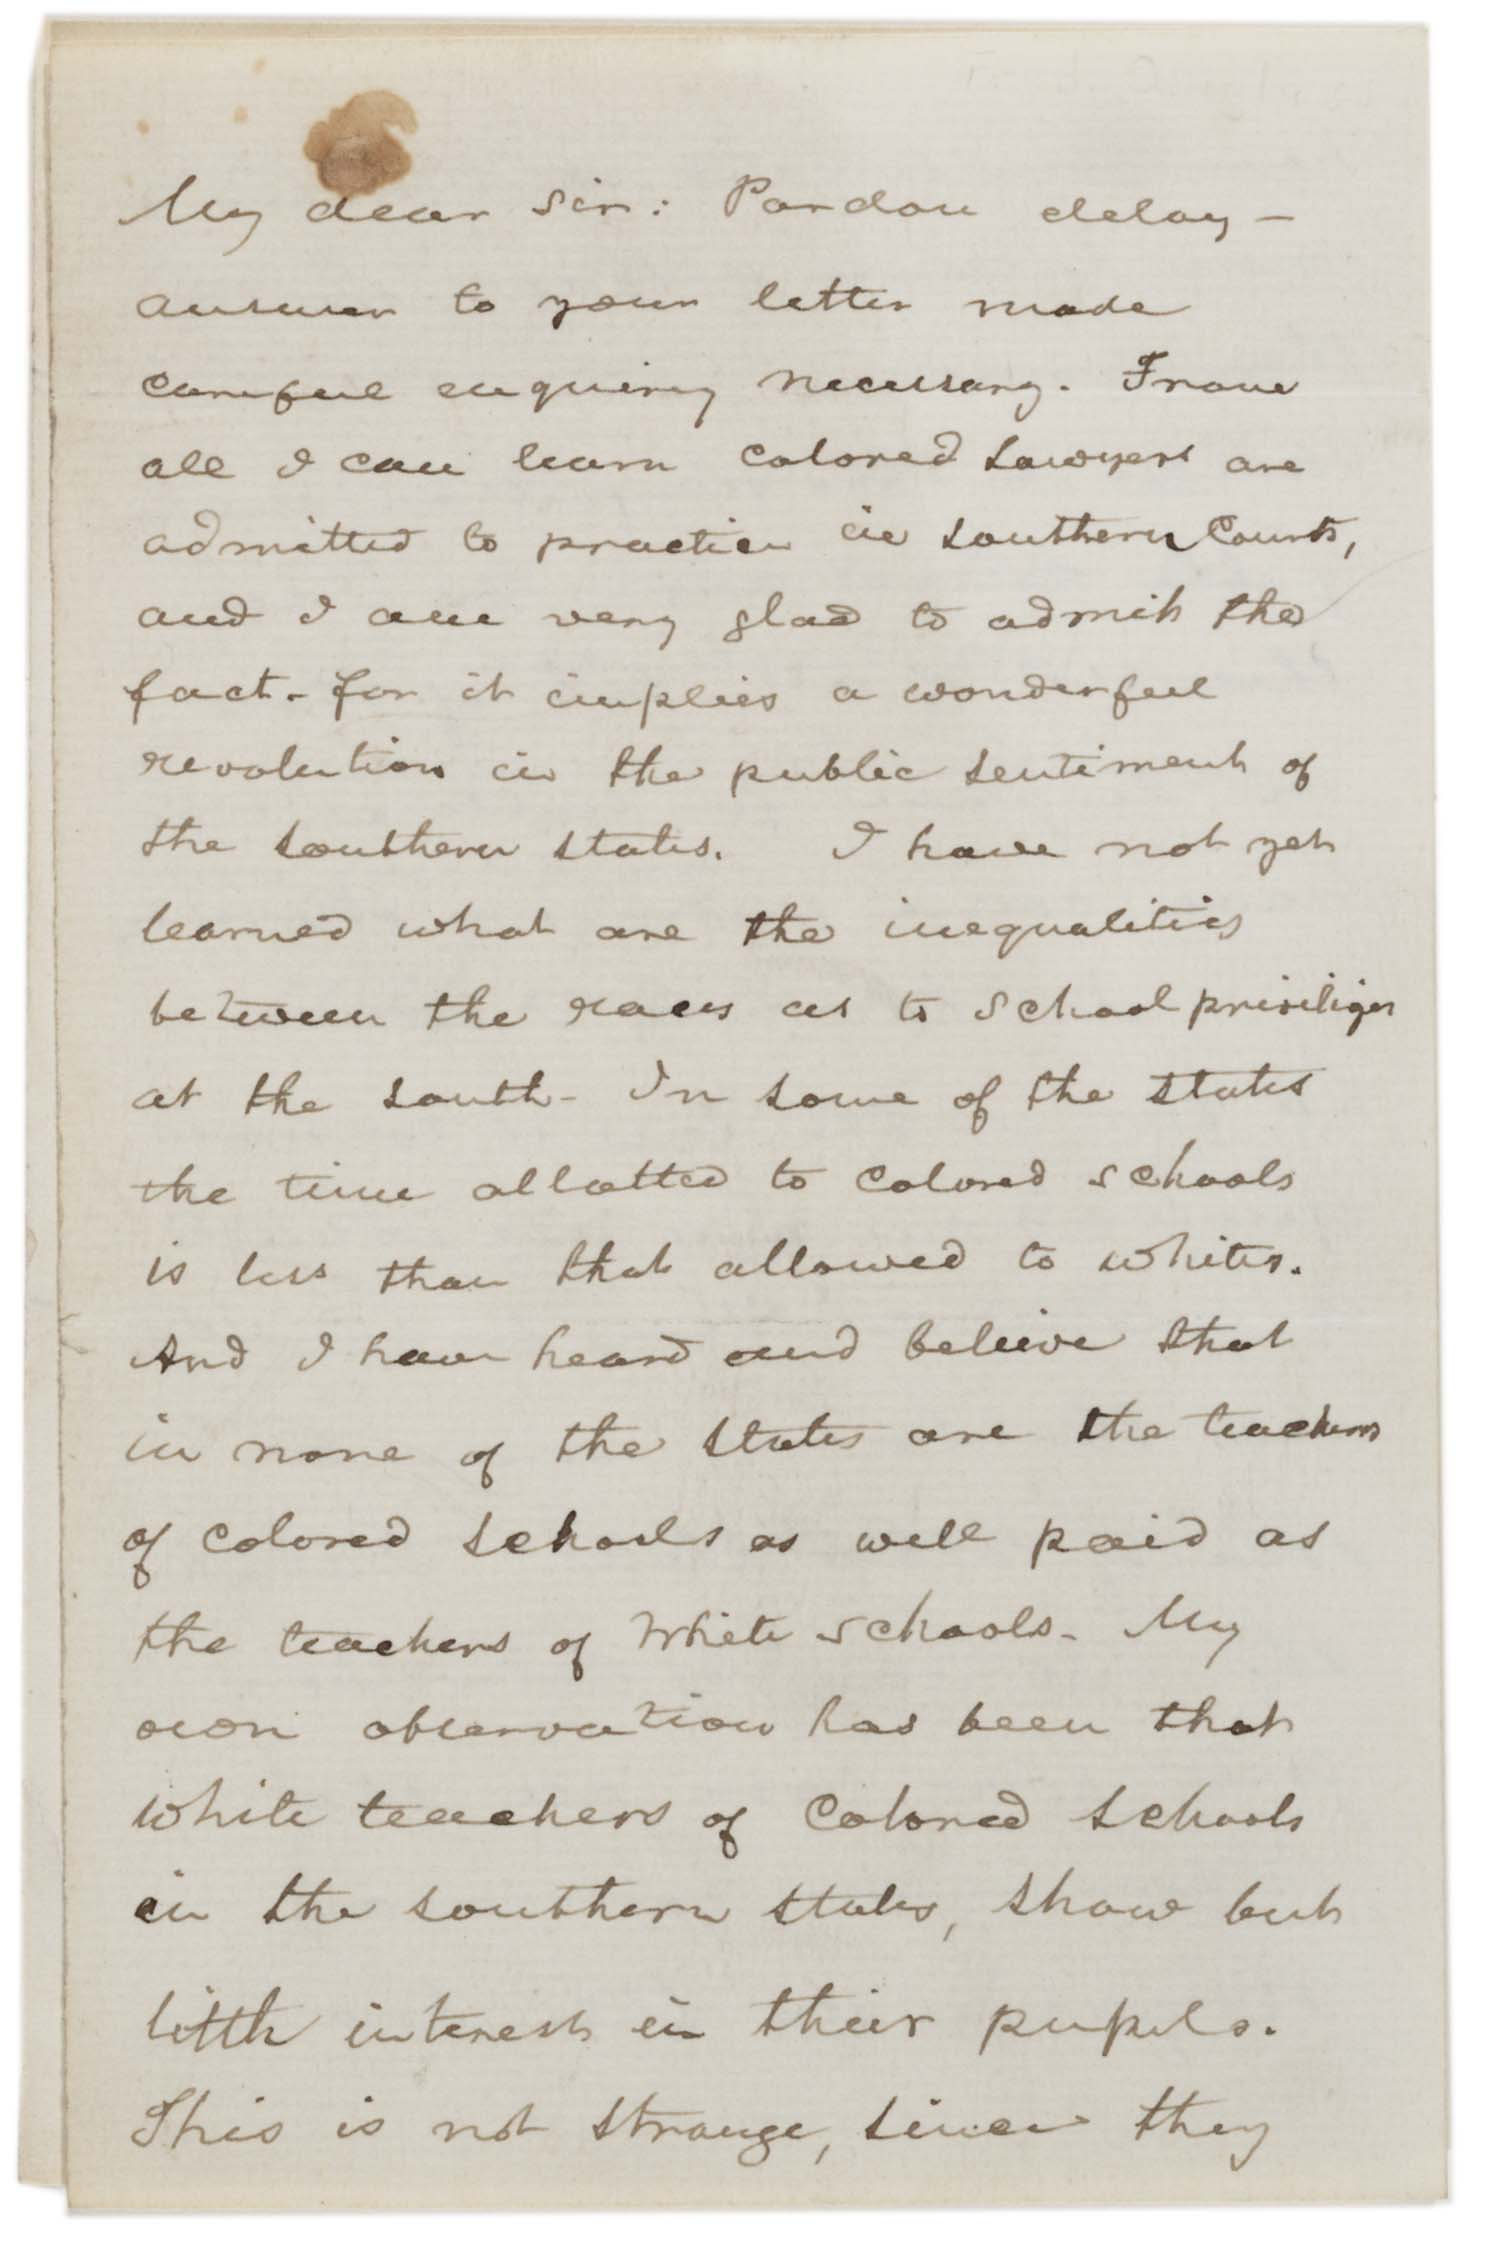 Frederick Douglass to unknown, November 23, 1887 (Gilder Lehrman Collection)